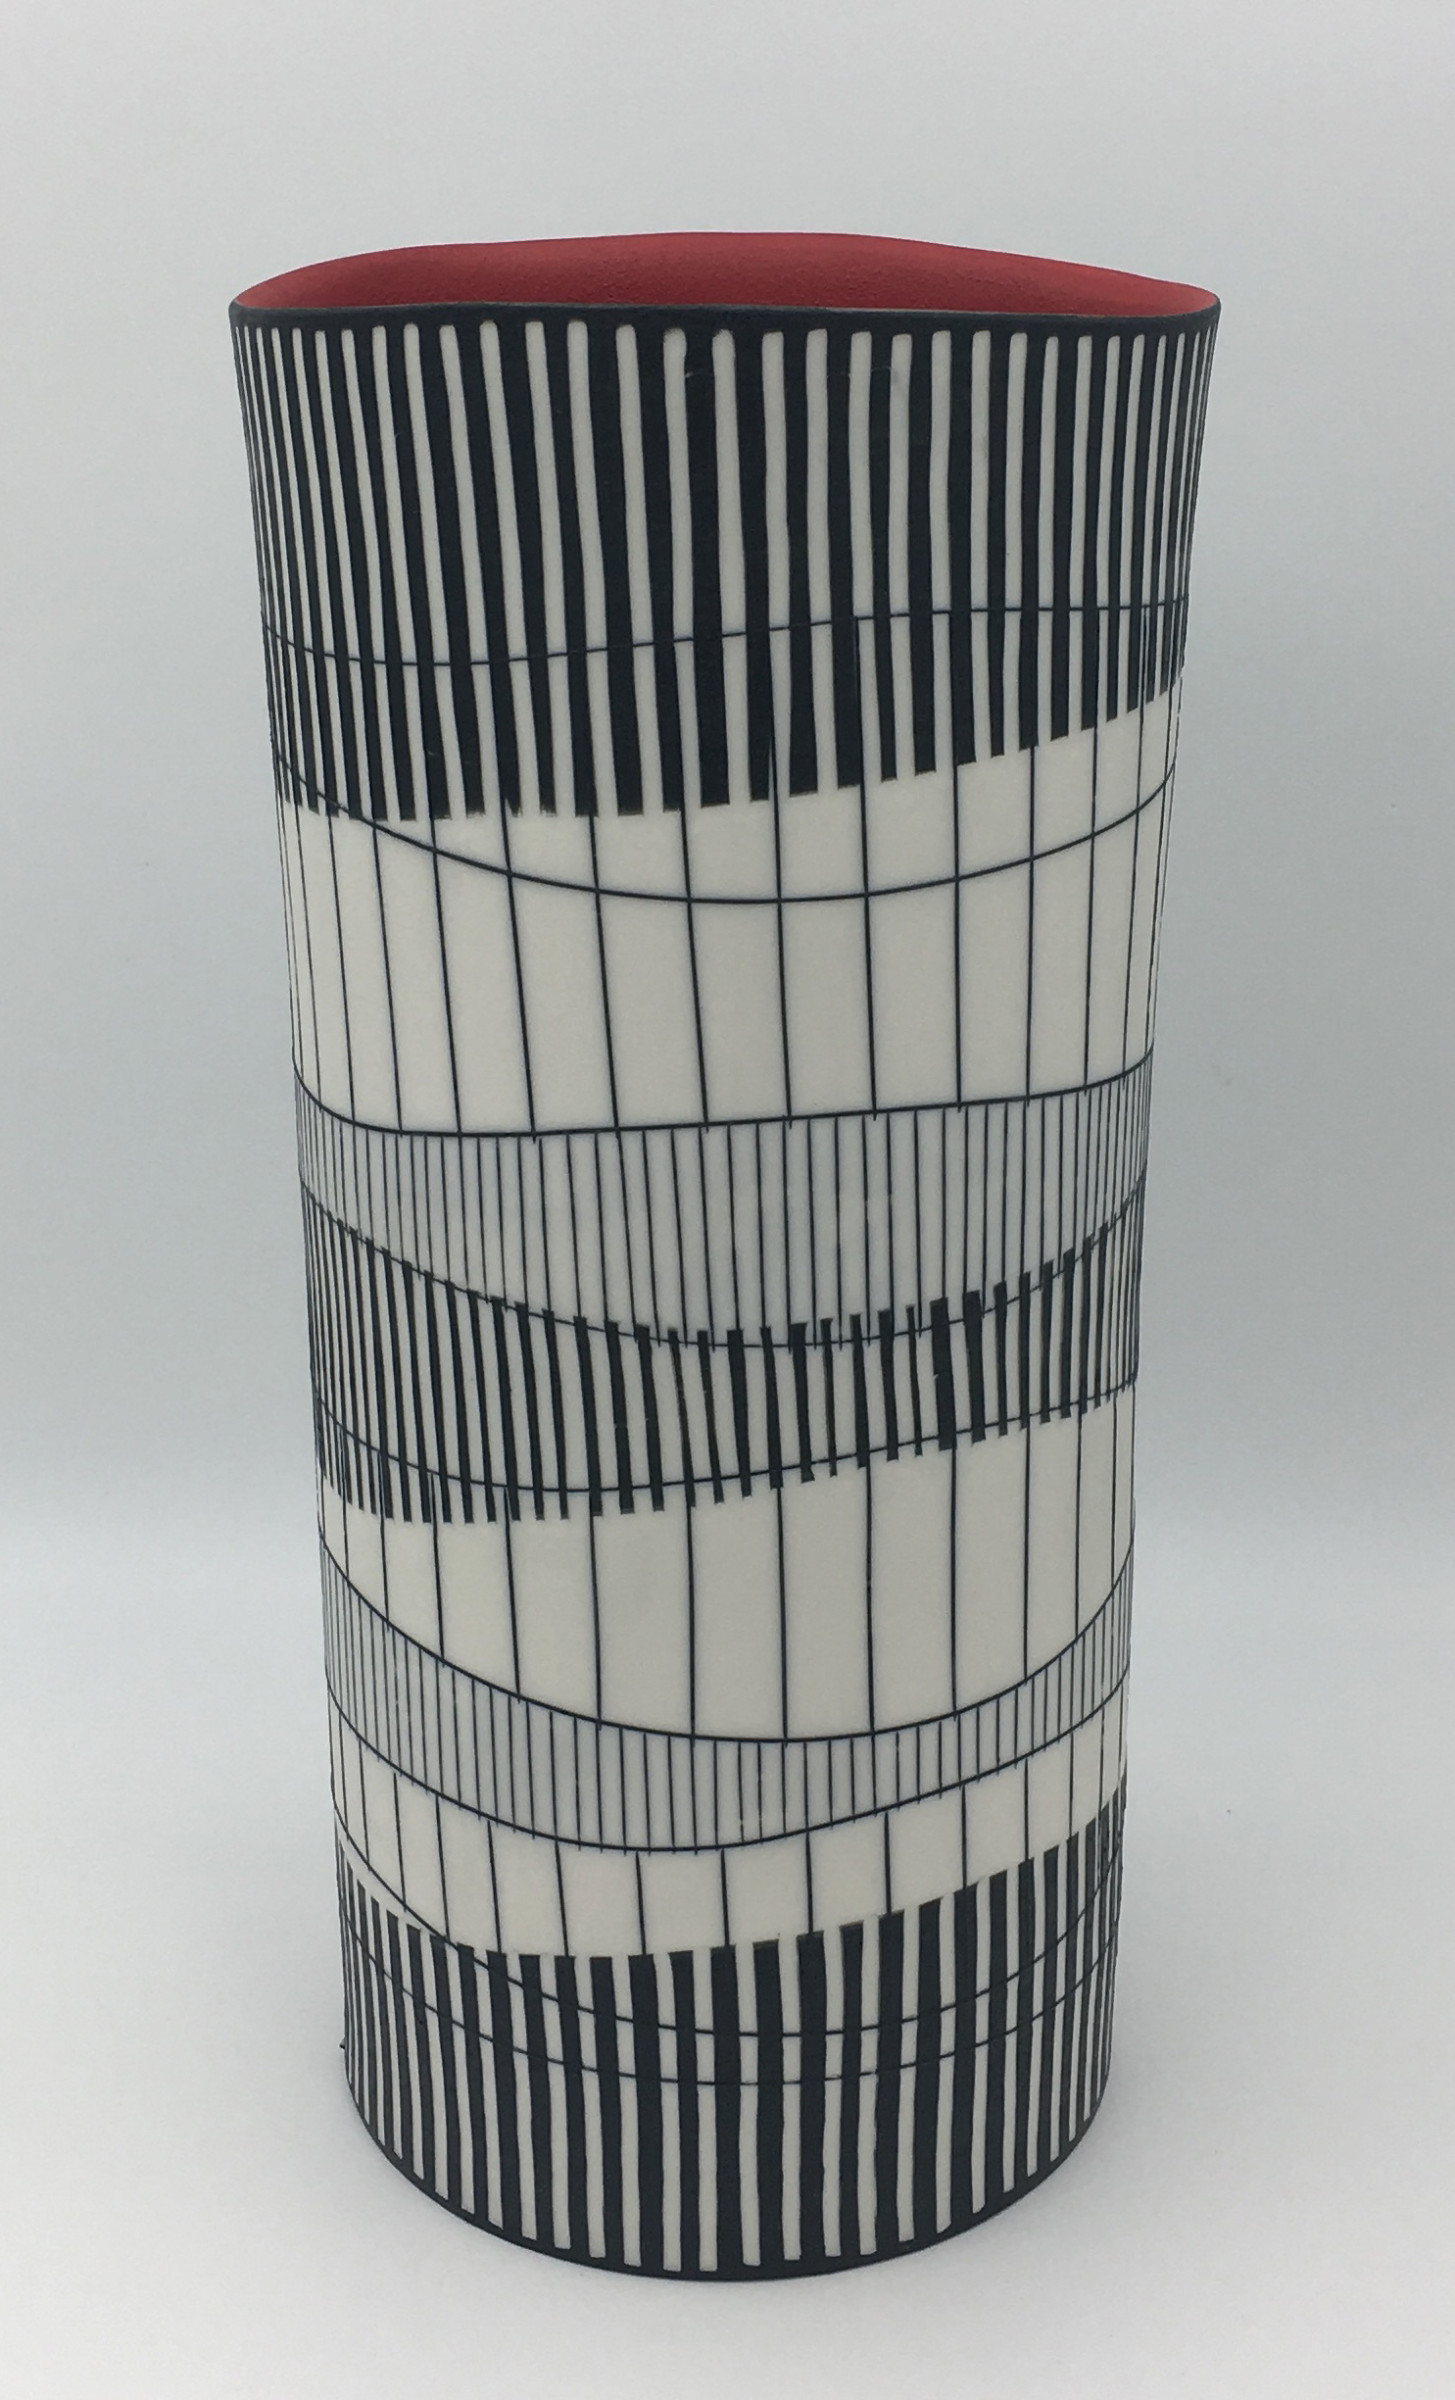 """<span class=""""link fancybox-details-link""""><a href=""""/artists/195-lara-scobie/works/6511-lara-scobie-large-tall-cylinder-vase-with-red-interior-2019/"""">View Detail Page</a></span><div class=""""artist""""><strong>Lara Scobie</strong></div> <div class=""""title""""><em>Large Tall Cylinder Vase with Red Interior</em>, 2019</div> <div class=""""medium"""">Porcelain</div><div class=""""price"""">£950.00</div><div class=""""copyright_line"""">Own Art: £75 x 10 Months, 0% APR</div>"""